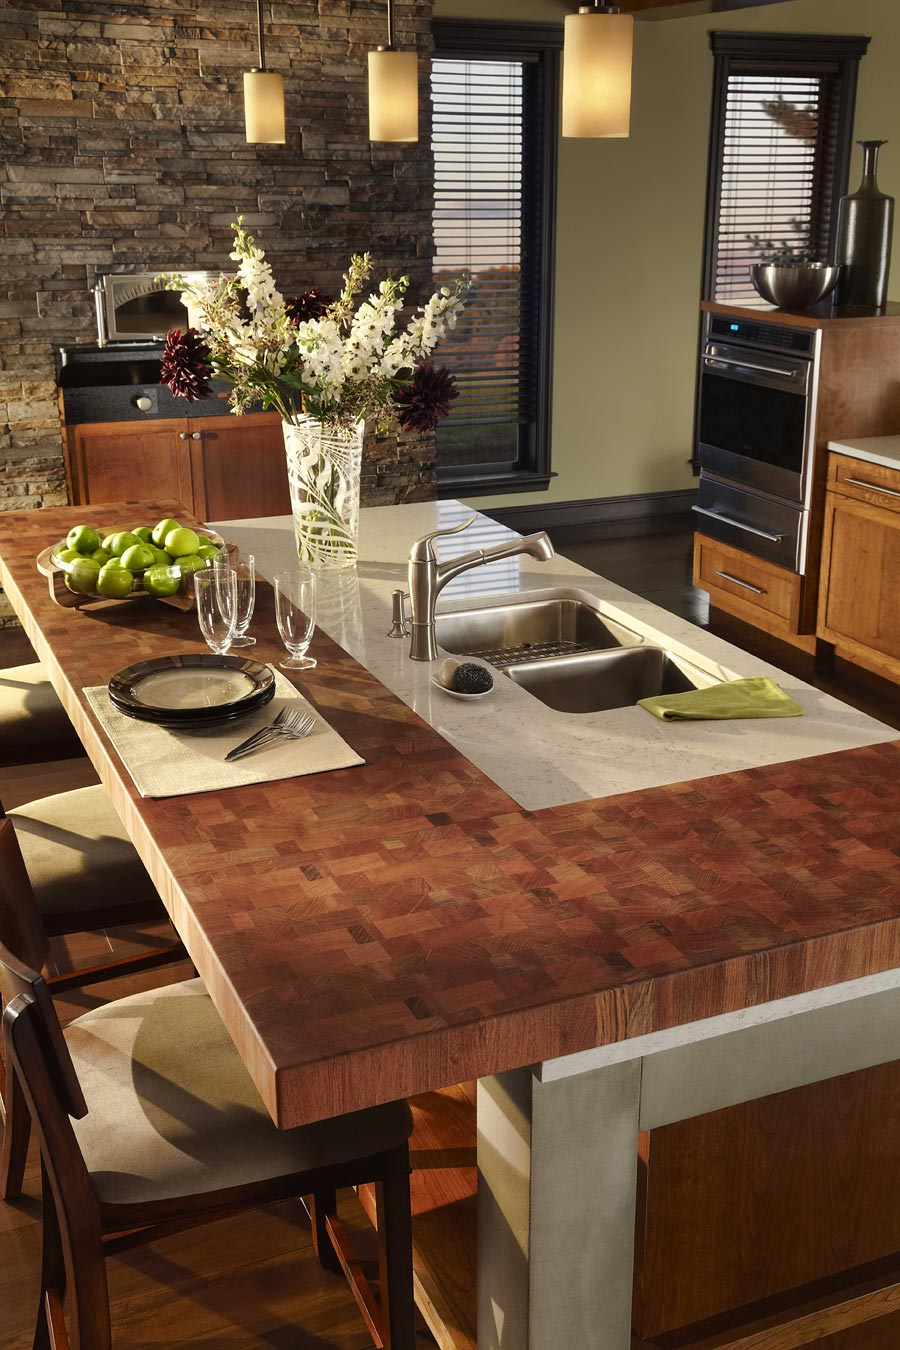 Brazilian Cherry Modern Butcher Block Countertops